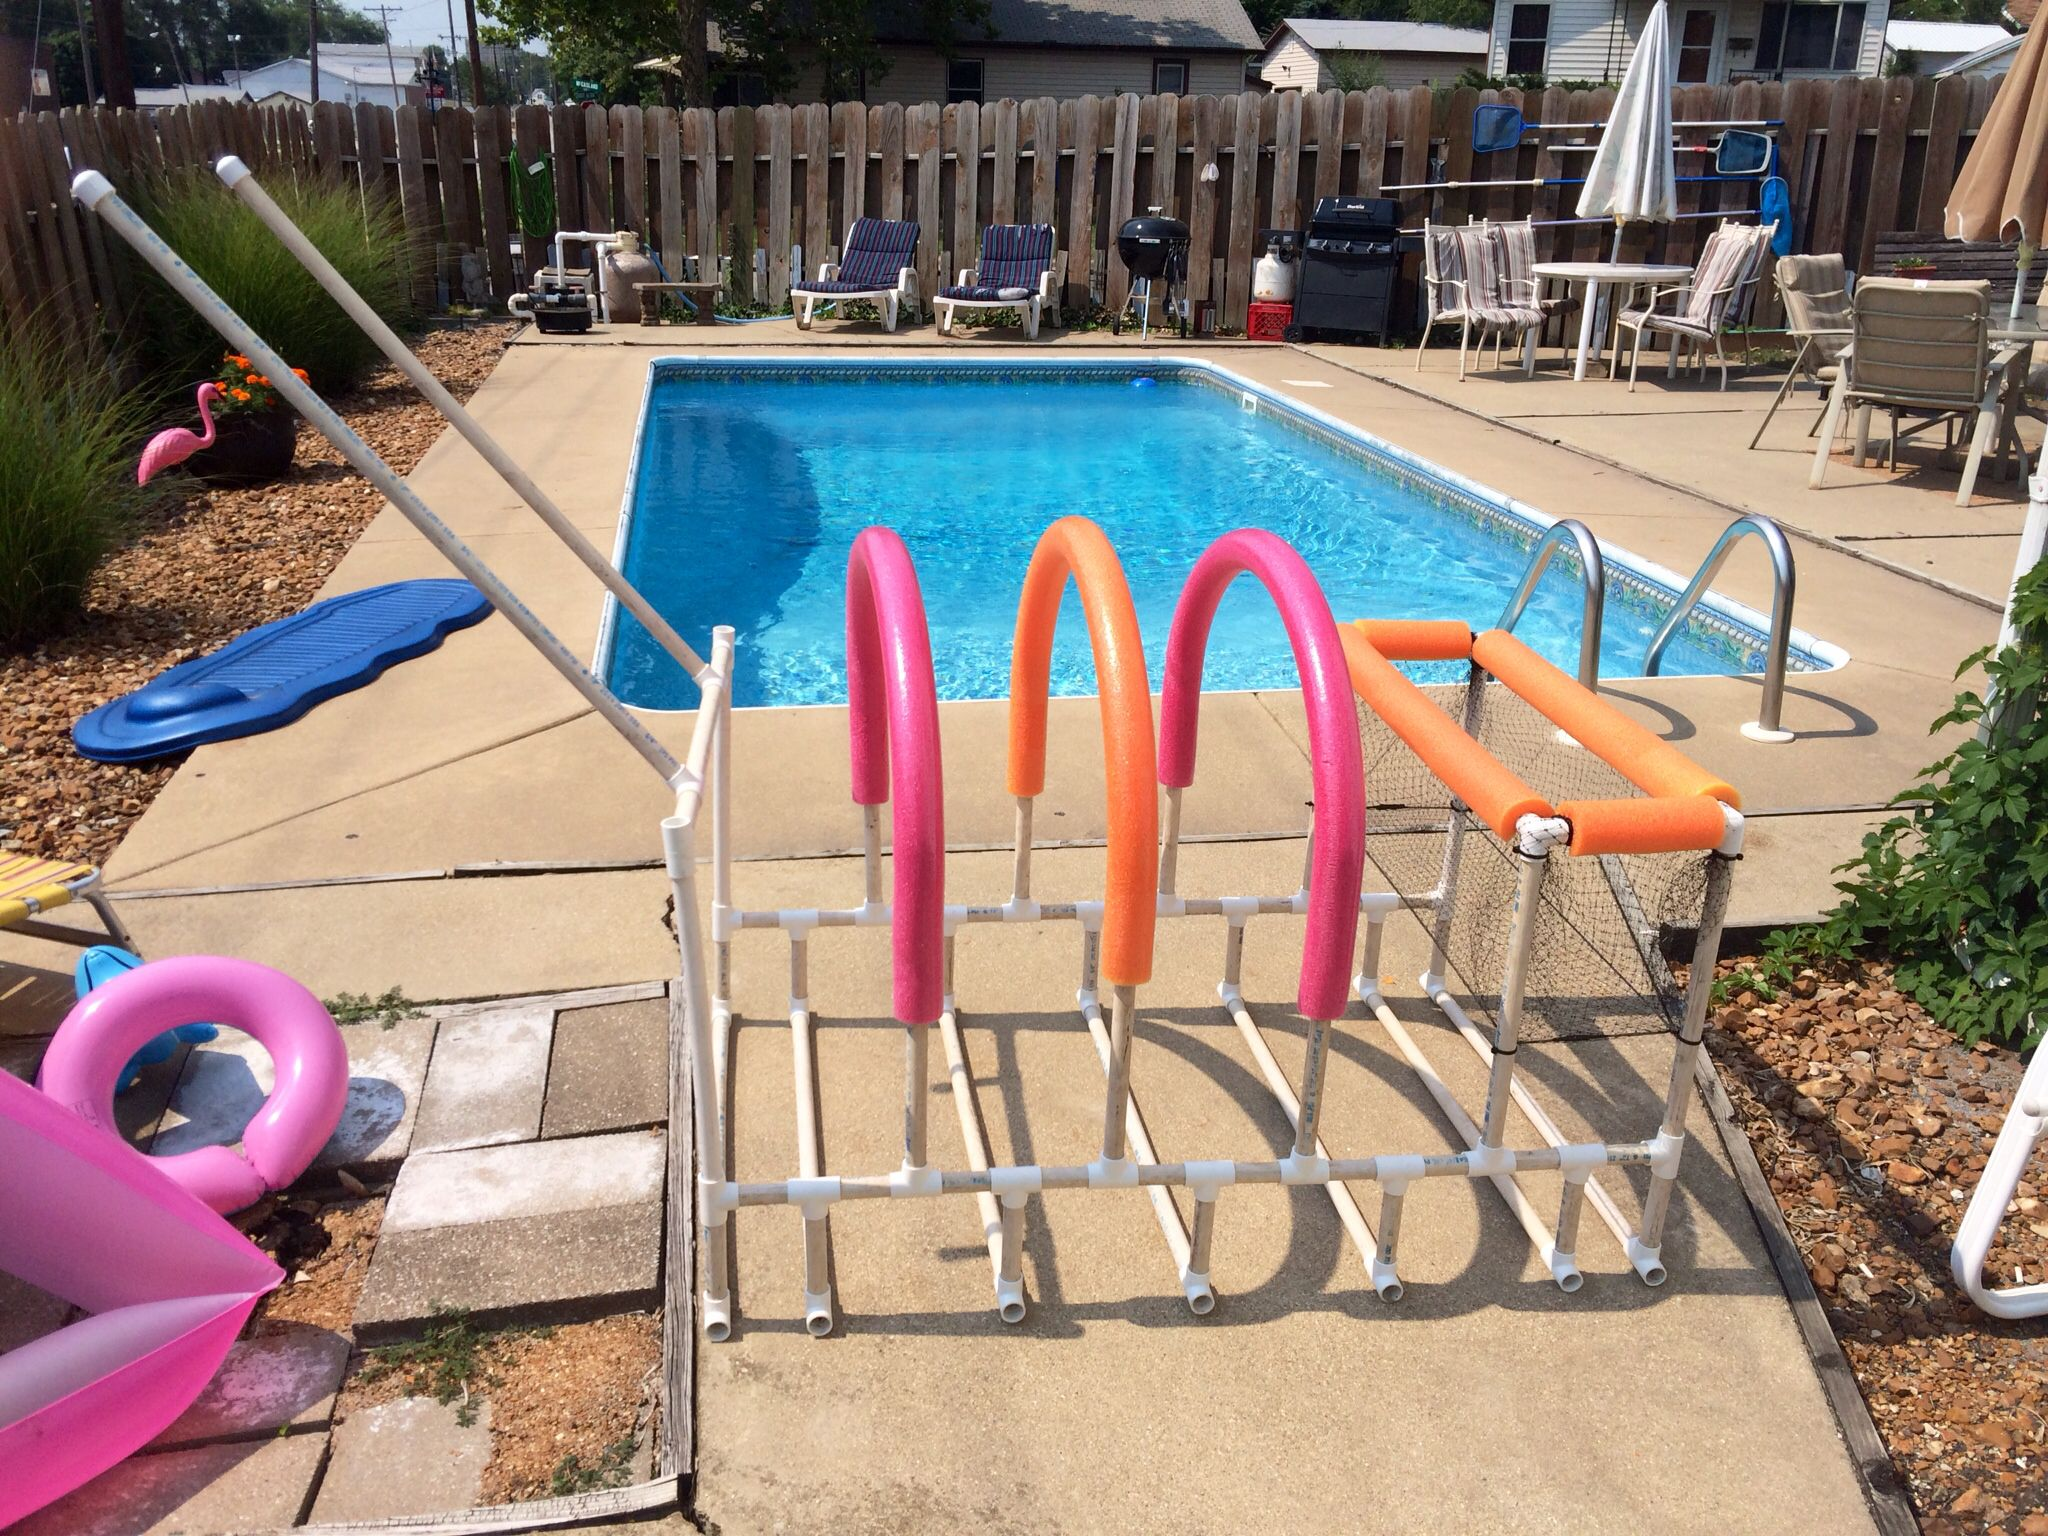 Nailed It Poolside Storage For Rafts Toys Goggles Tubes And Noodles Total Cost Was Less Than 40 Could Prob Pvc Pool Pool Toy Storage Pool Float Storage